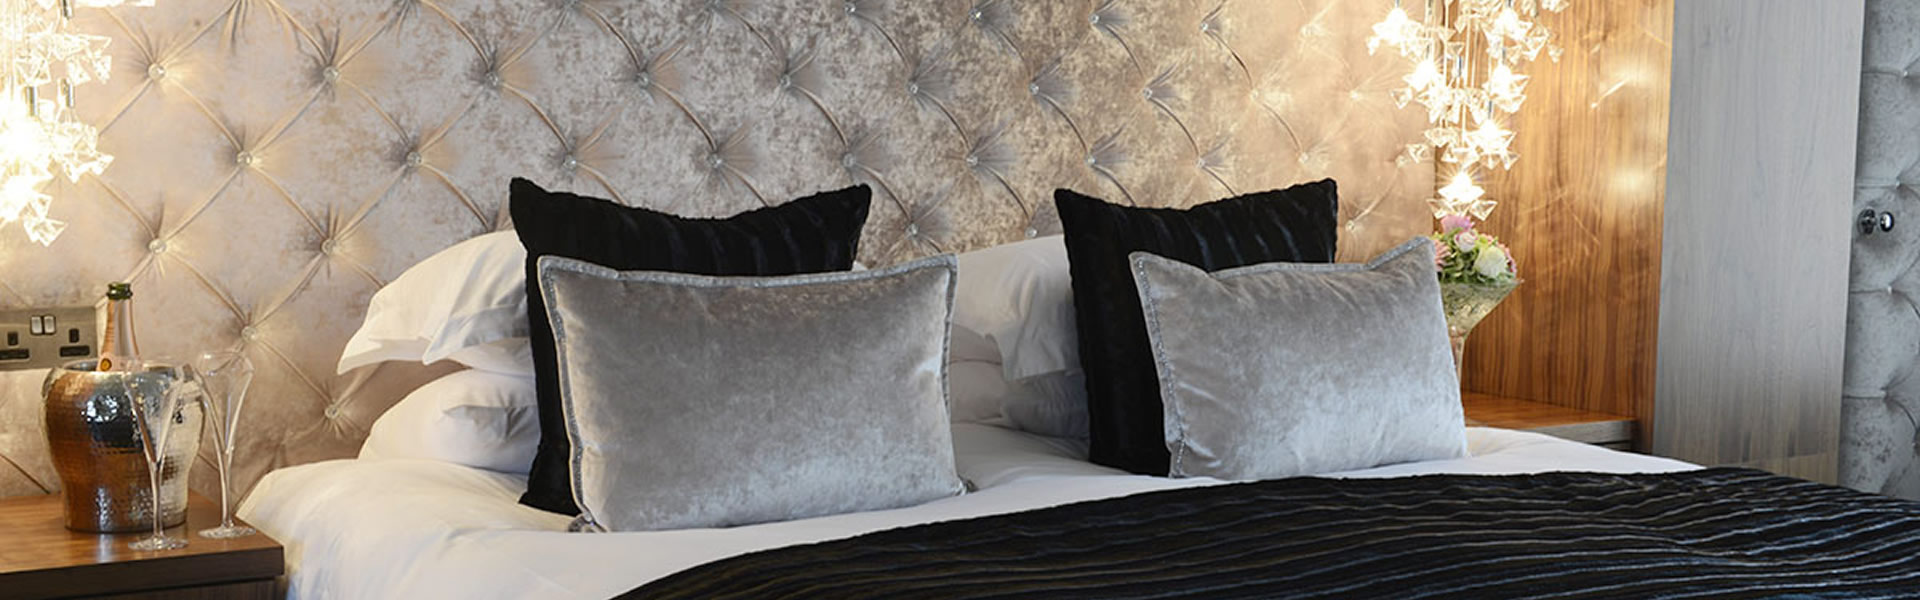 hotelcolessio_Bedroom_Club_Double_1920x600